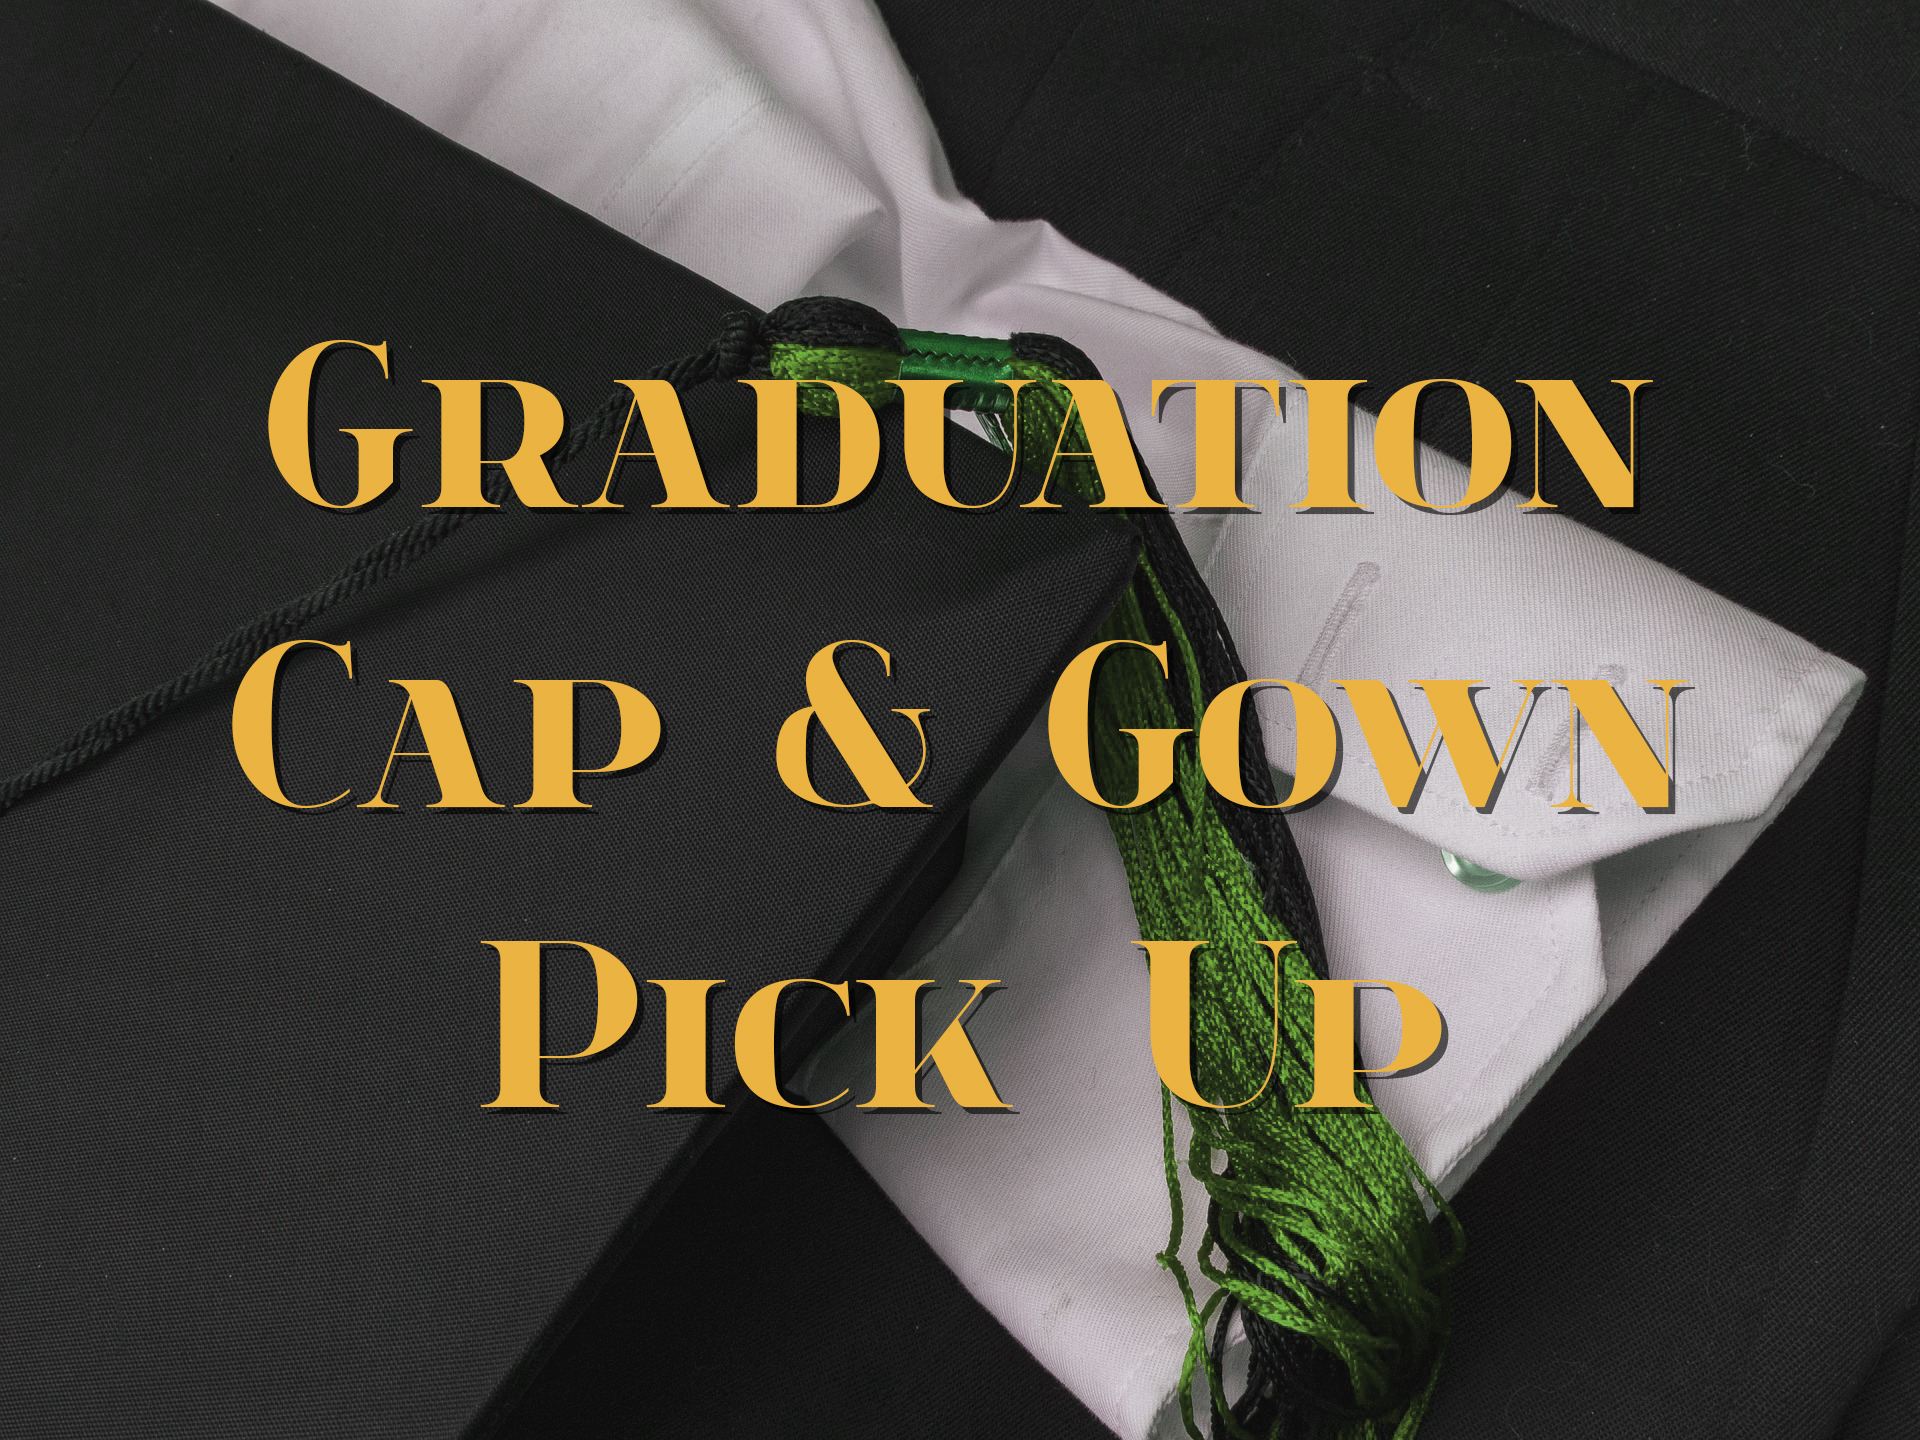 Picture of graduation cap with text stating Gaduation Cap and Gown Pick Up